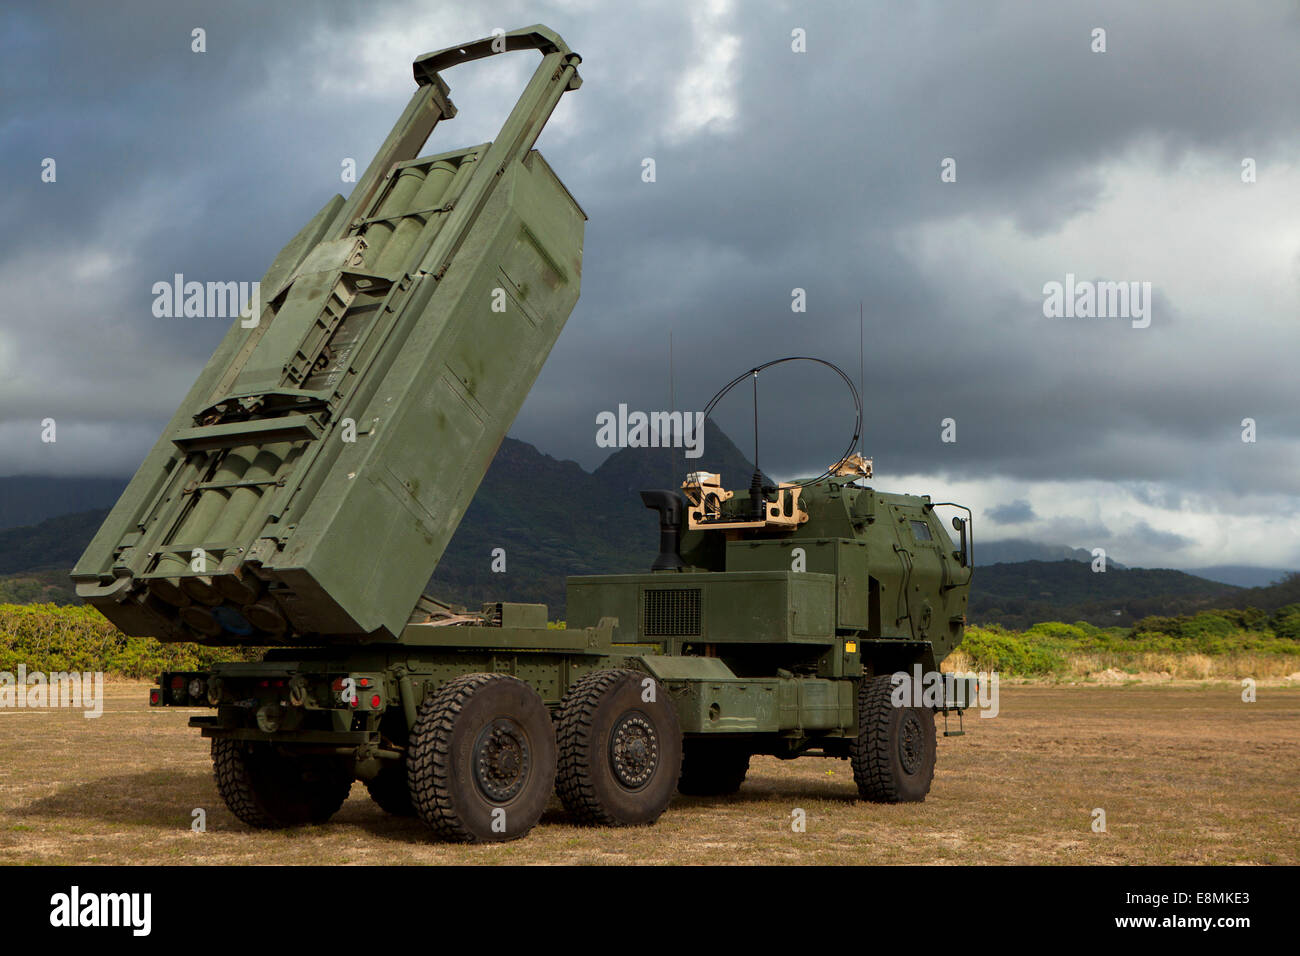 A M142 High Mobility Artillery Rocket System (HIMARS) conducts dry fire exercises in support of infantry units in - Stock Image